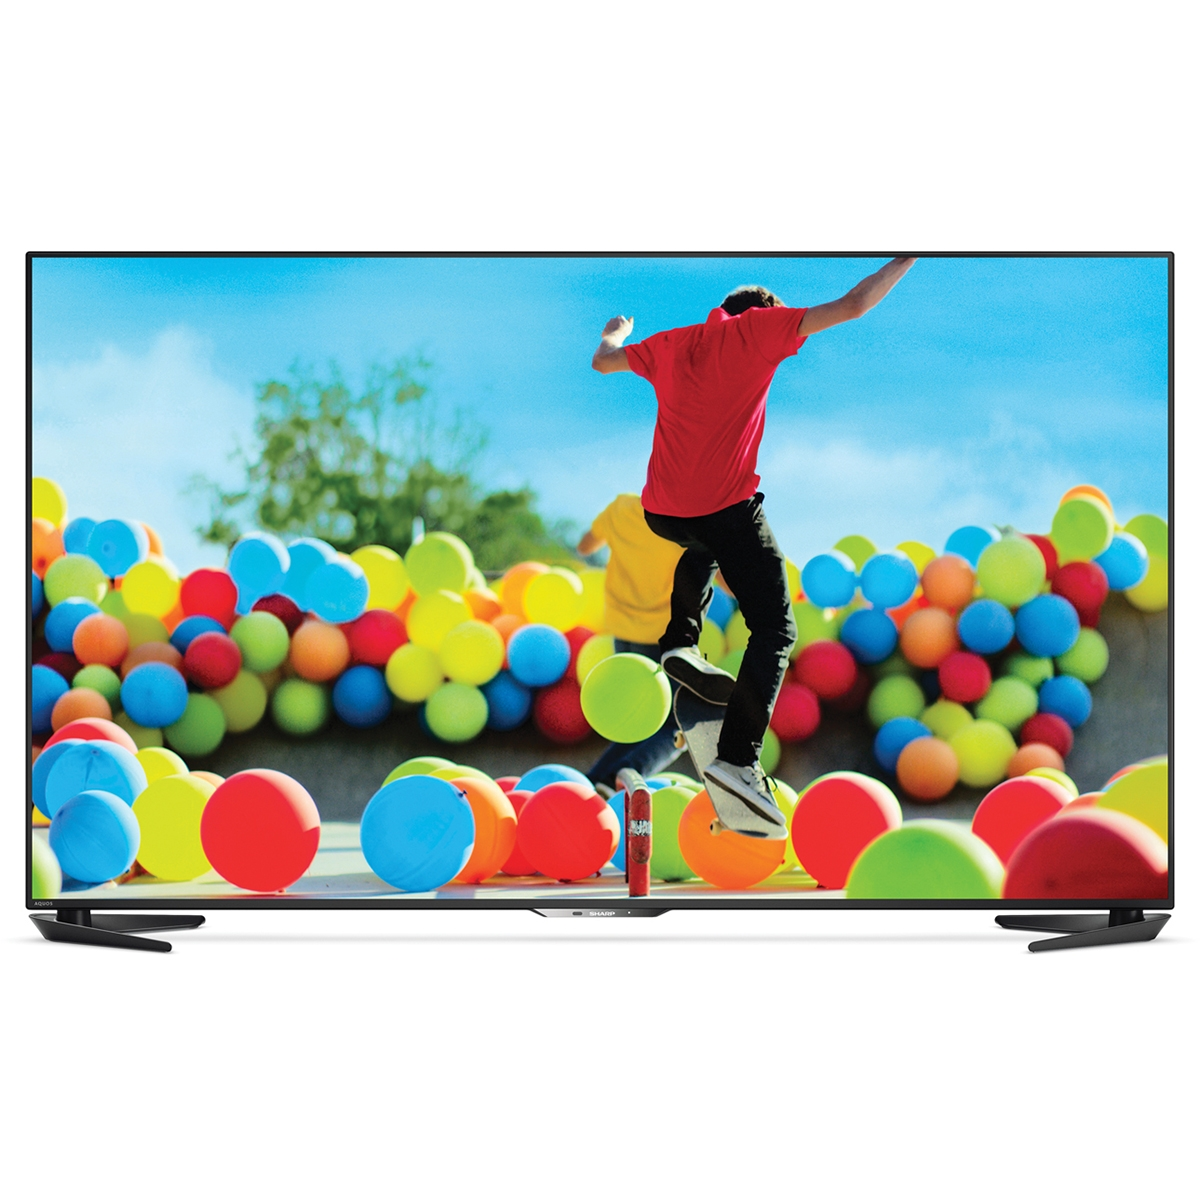 Sharp AQUOS 70inch LED 4K Ultra HDTV - LC-70UE30U